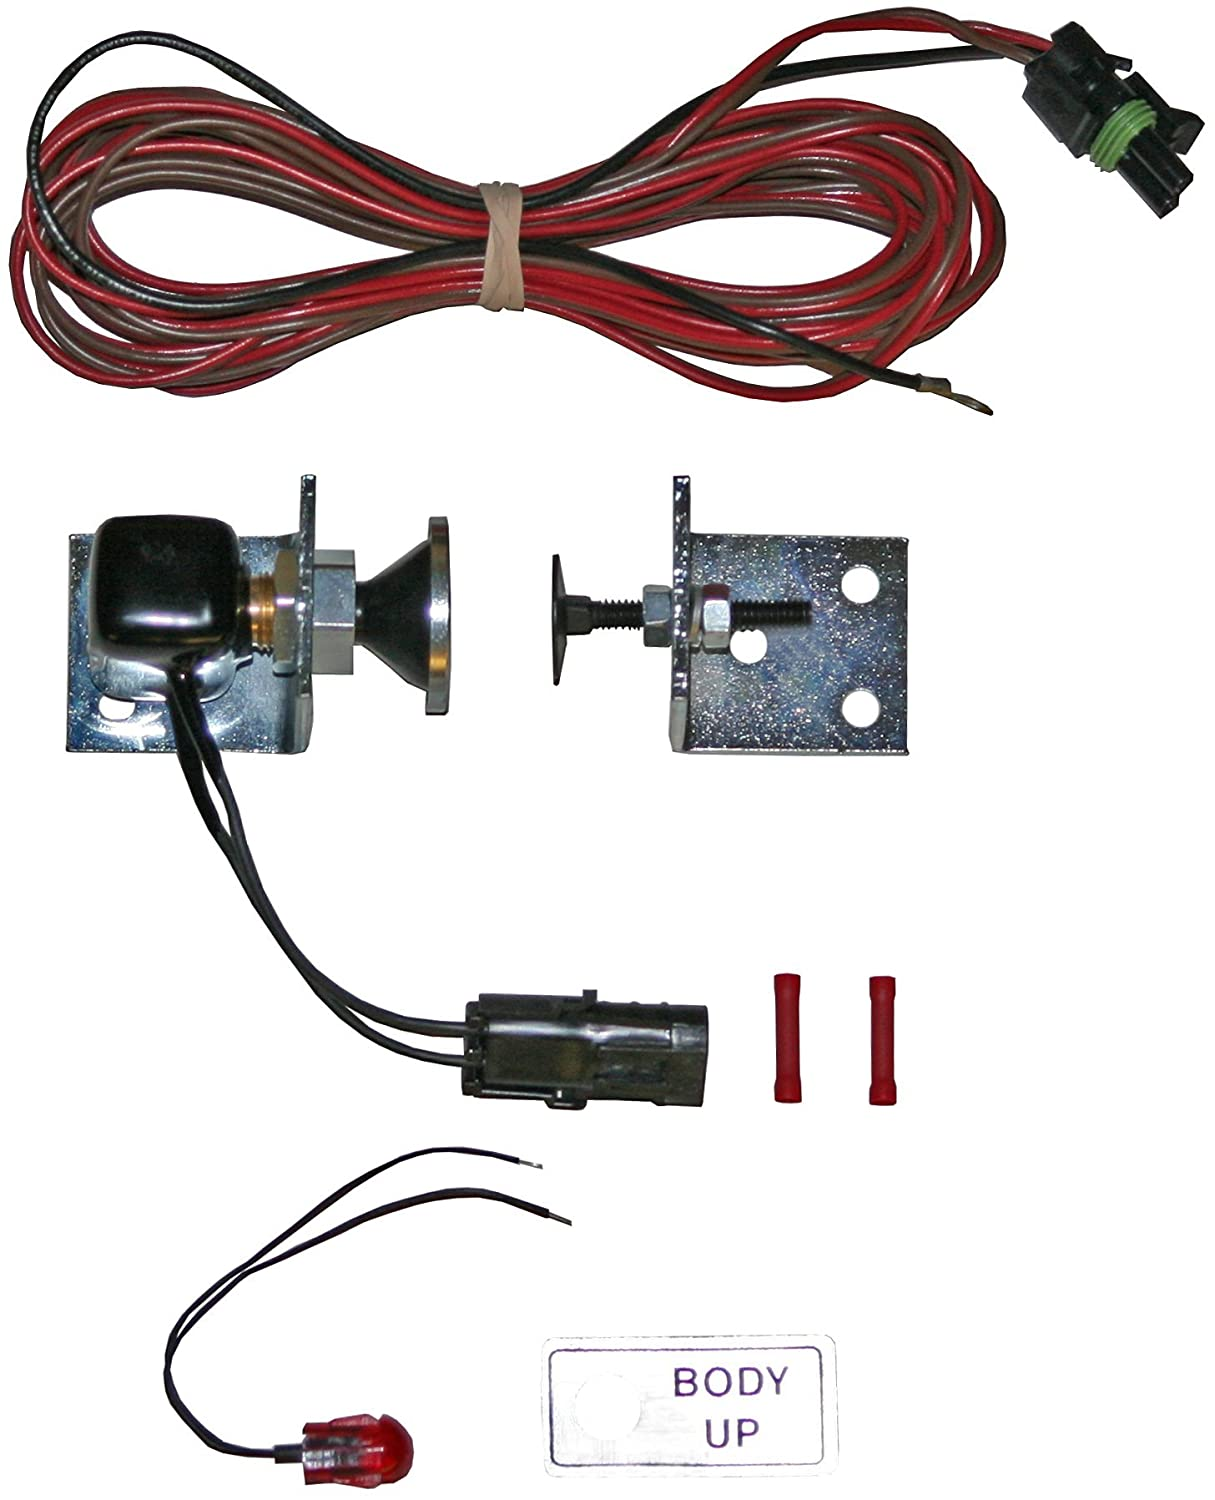 71A04heYOIL._SL1500_ amazon com buyers products sk12 body up indicator kit with buzzer indicator buzzer wiring diagram at bayanpartner.co